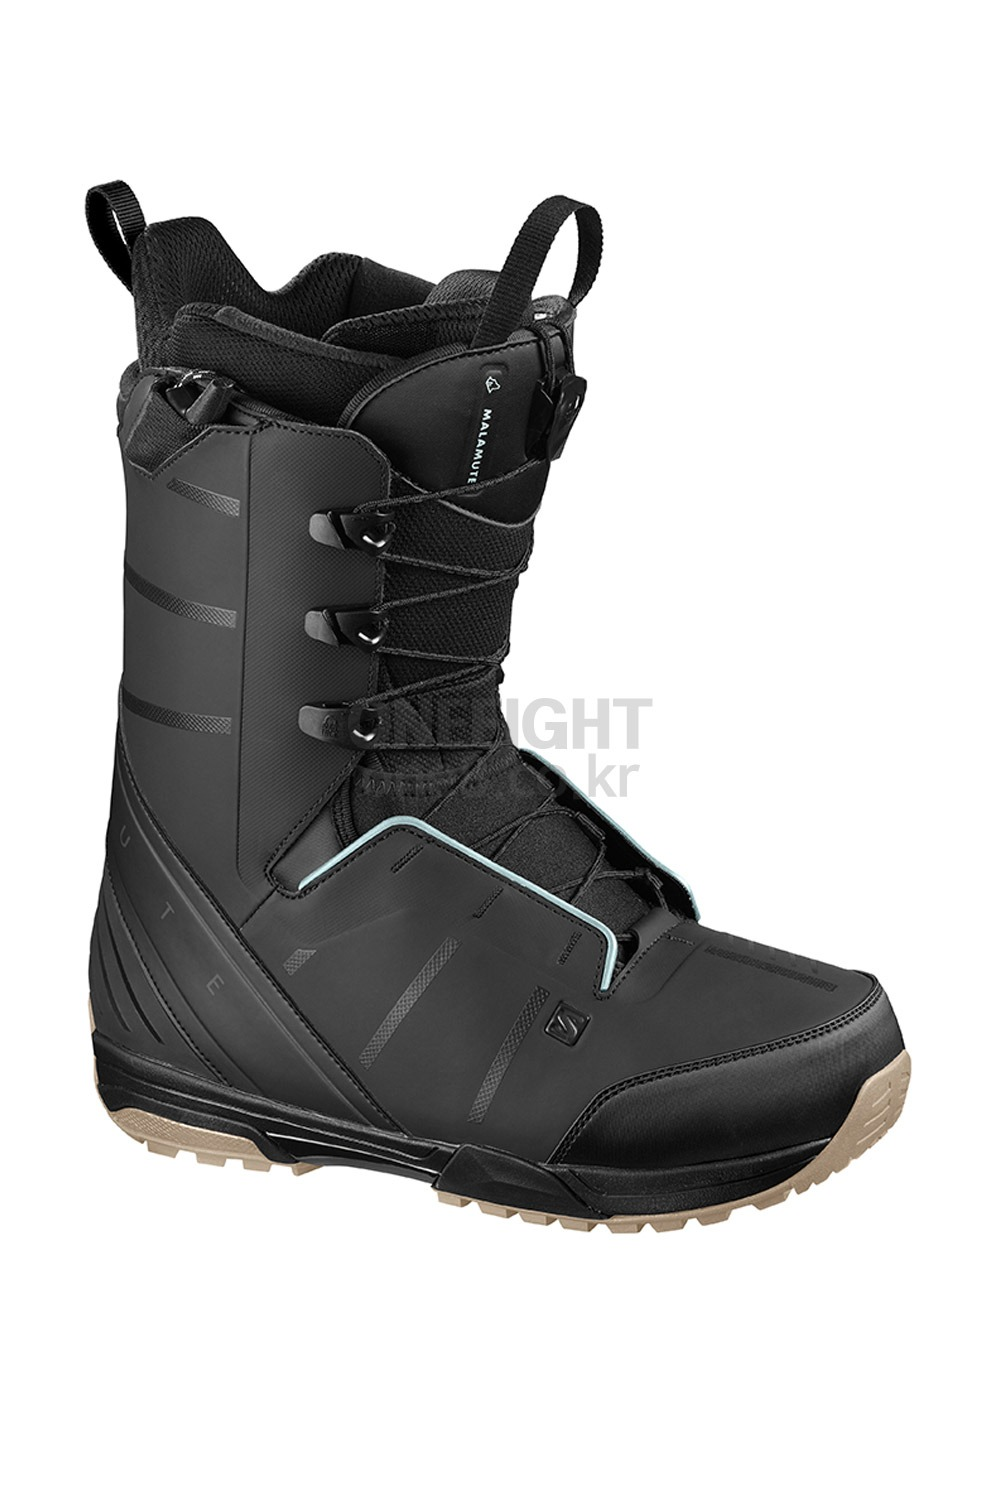 2021 살로몬 부츠 말라뮤트 2021 SALOMON MALAMUTE_BLACK/BLACK/STERLING BLUE_라이딩_A5SA002BK